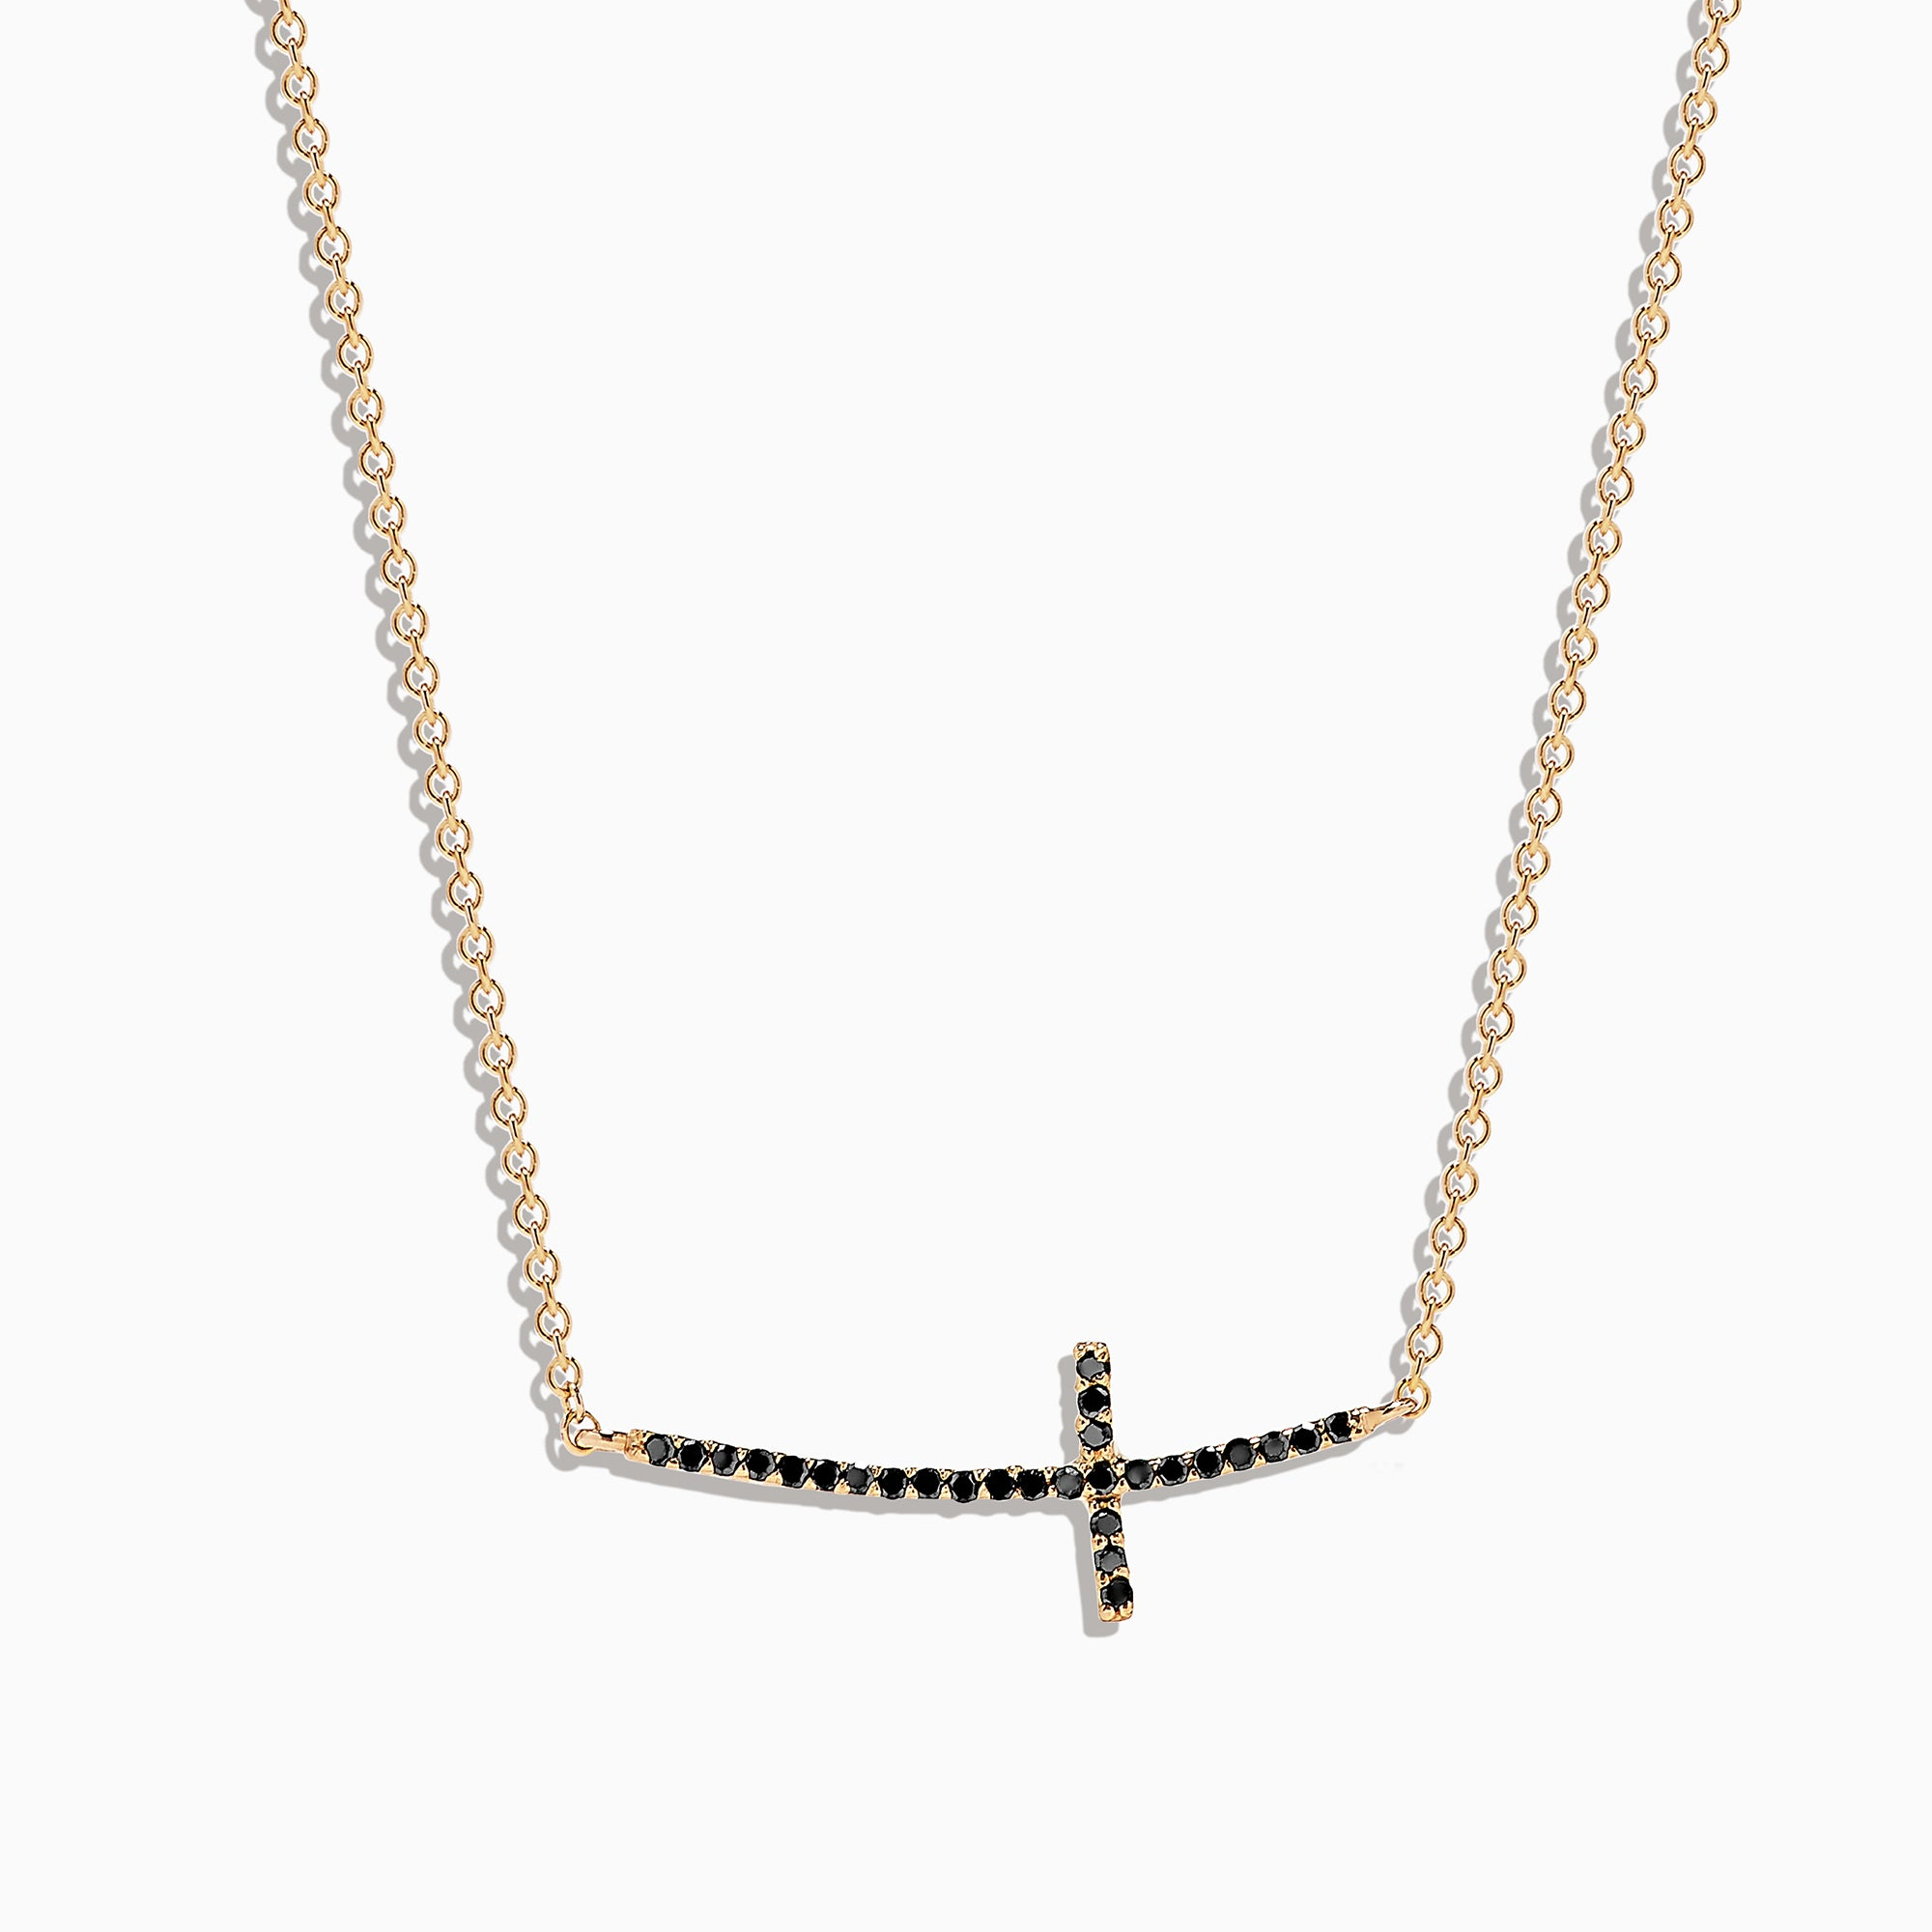 Effy 14K Yellow Gold Black Diamond Cross Necklace, 0.11 TCW